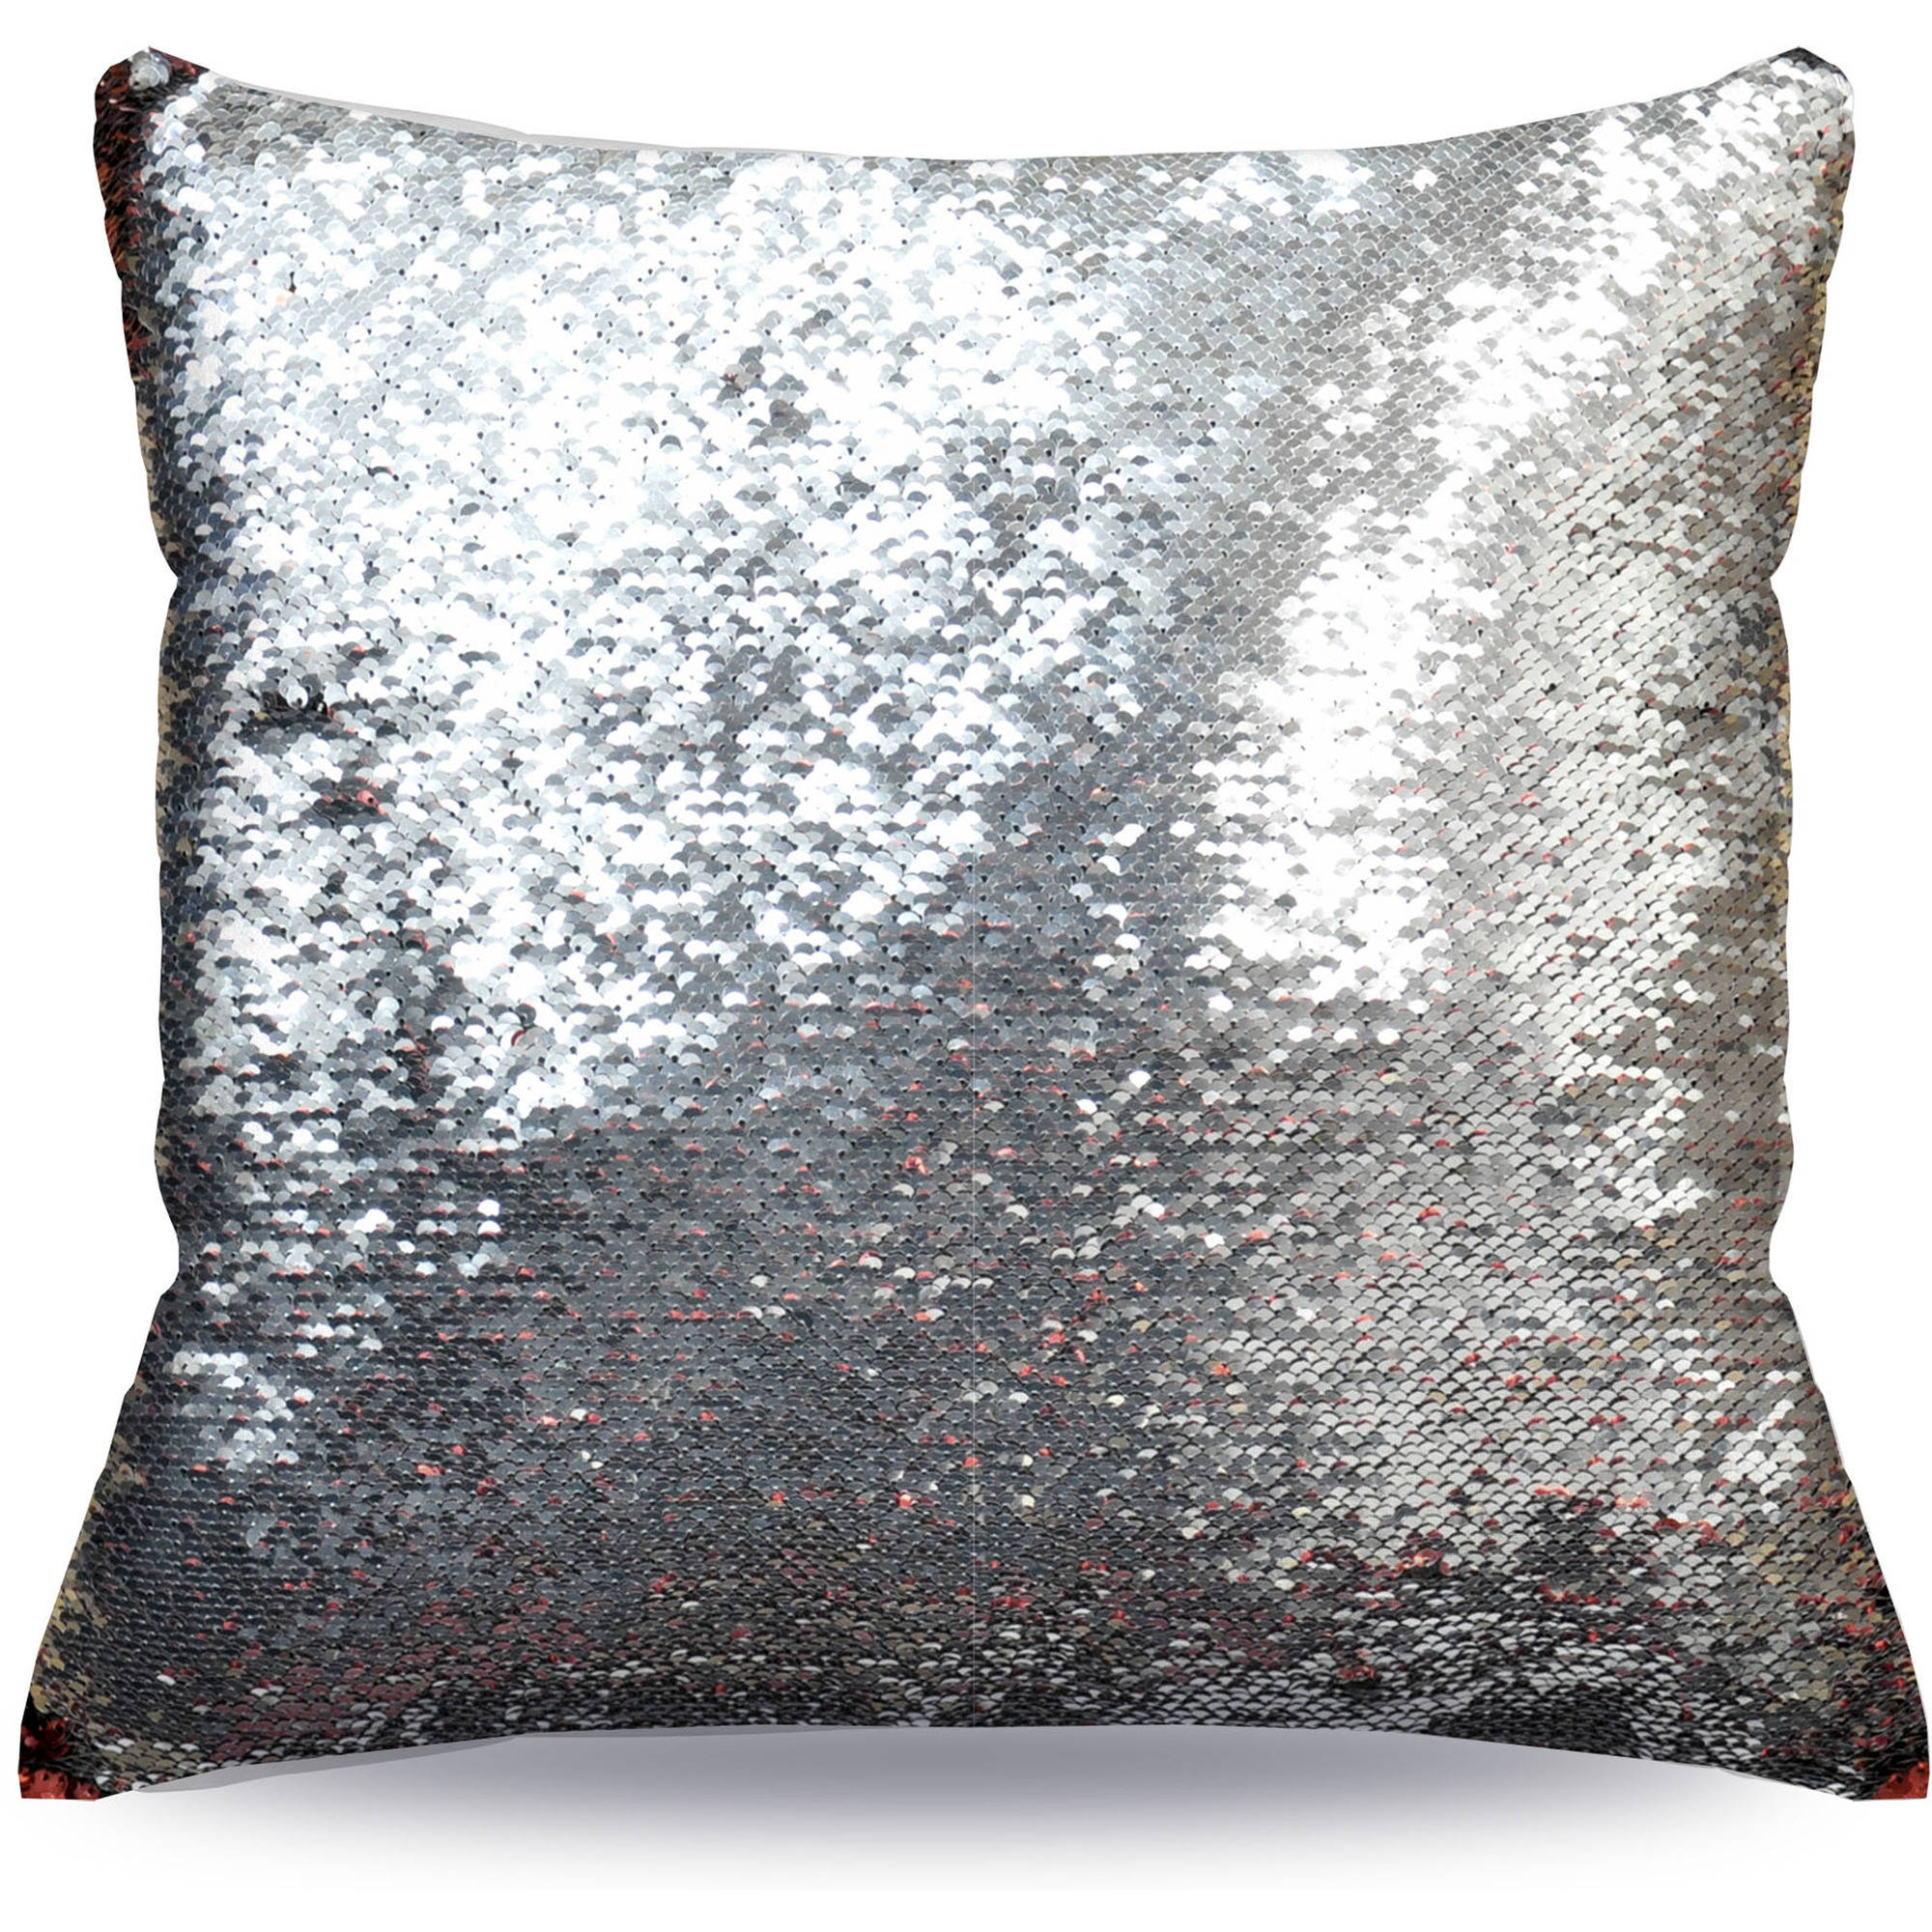 eco pillows gift weds decor friendly pillow for students pin teens newly home